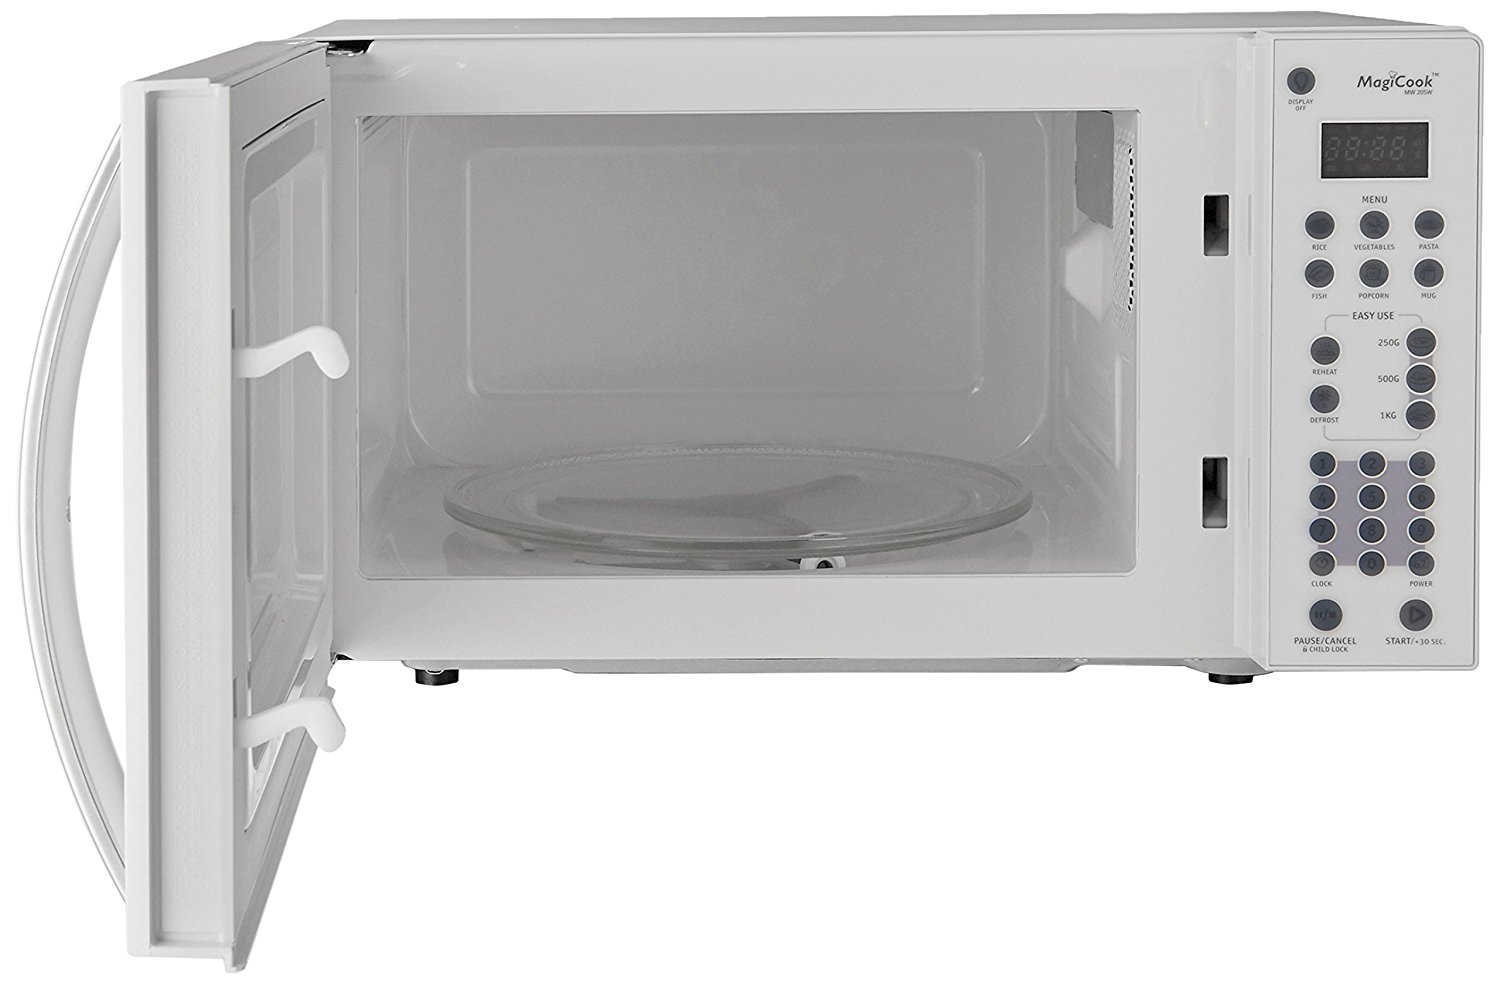 Whirlpool microwave oven 20 liters